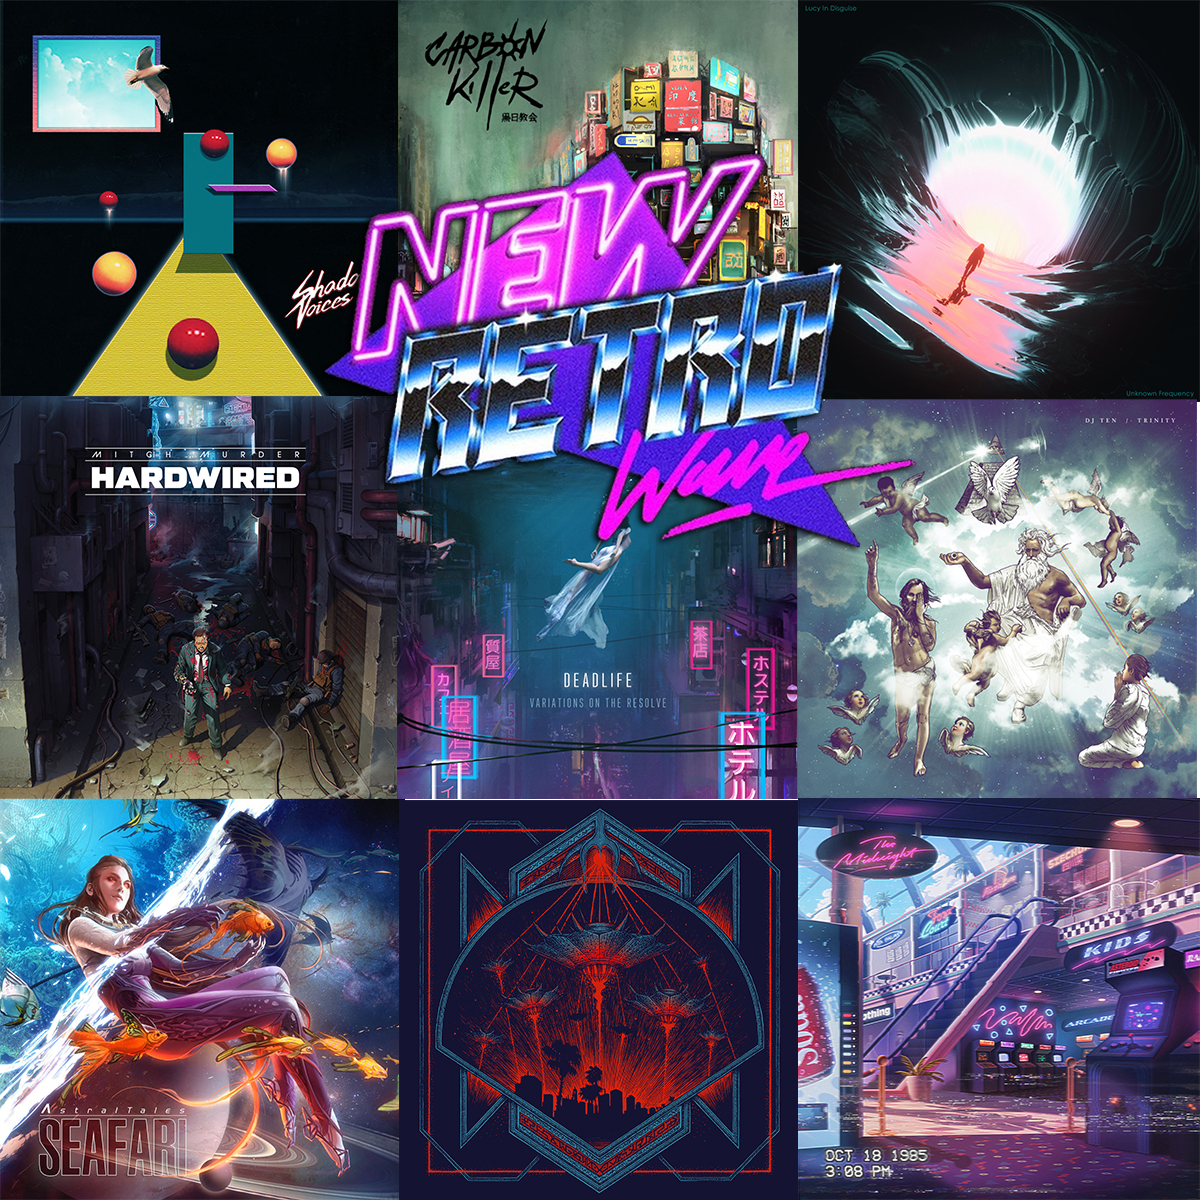 Top 10 Music Art - Top Ten Retrowave Album Covers of 2018